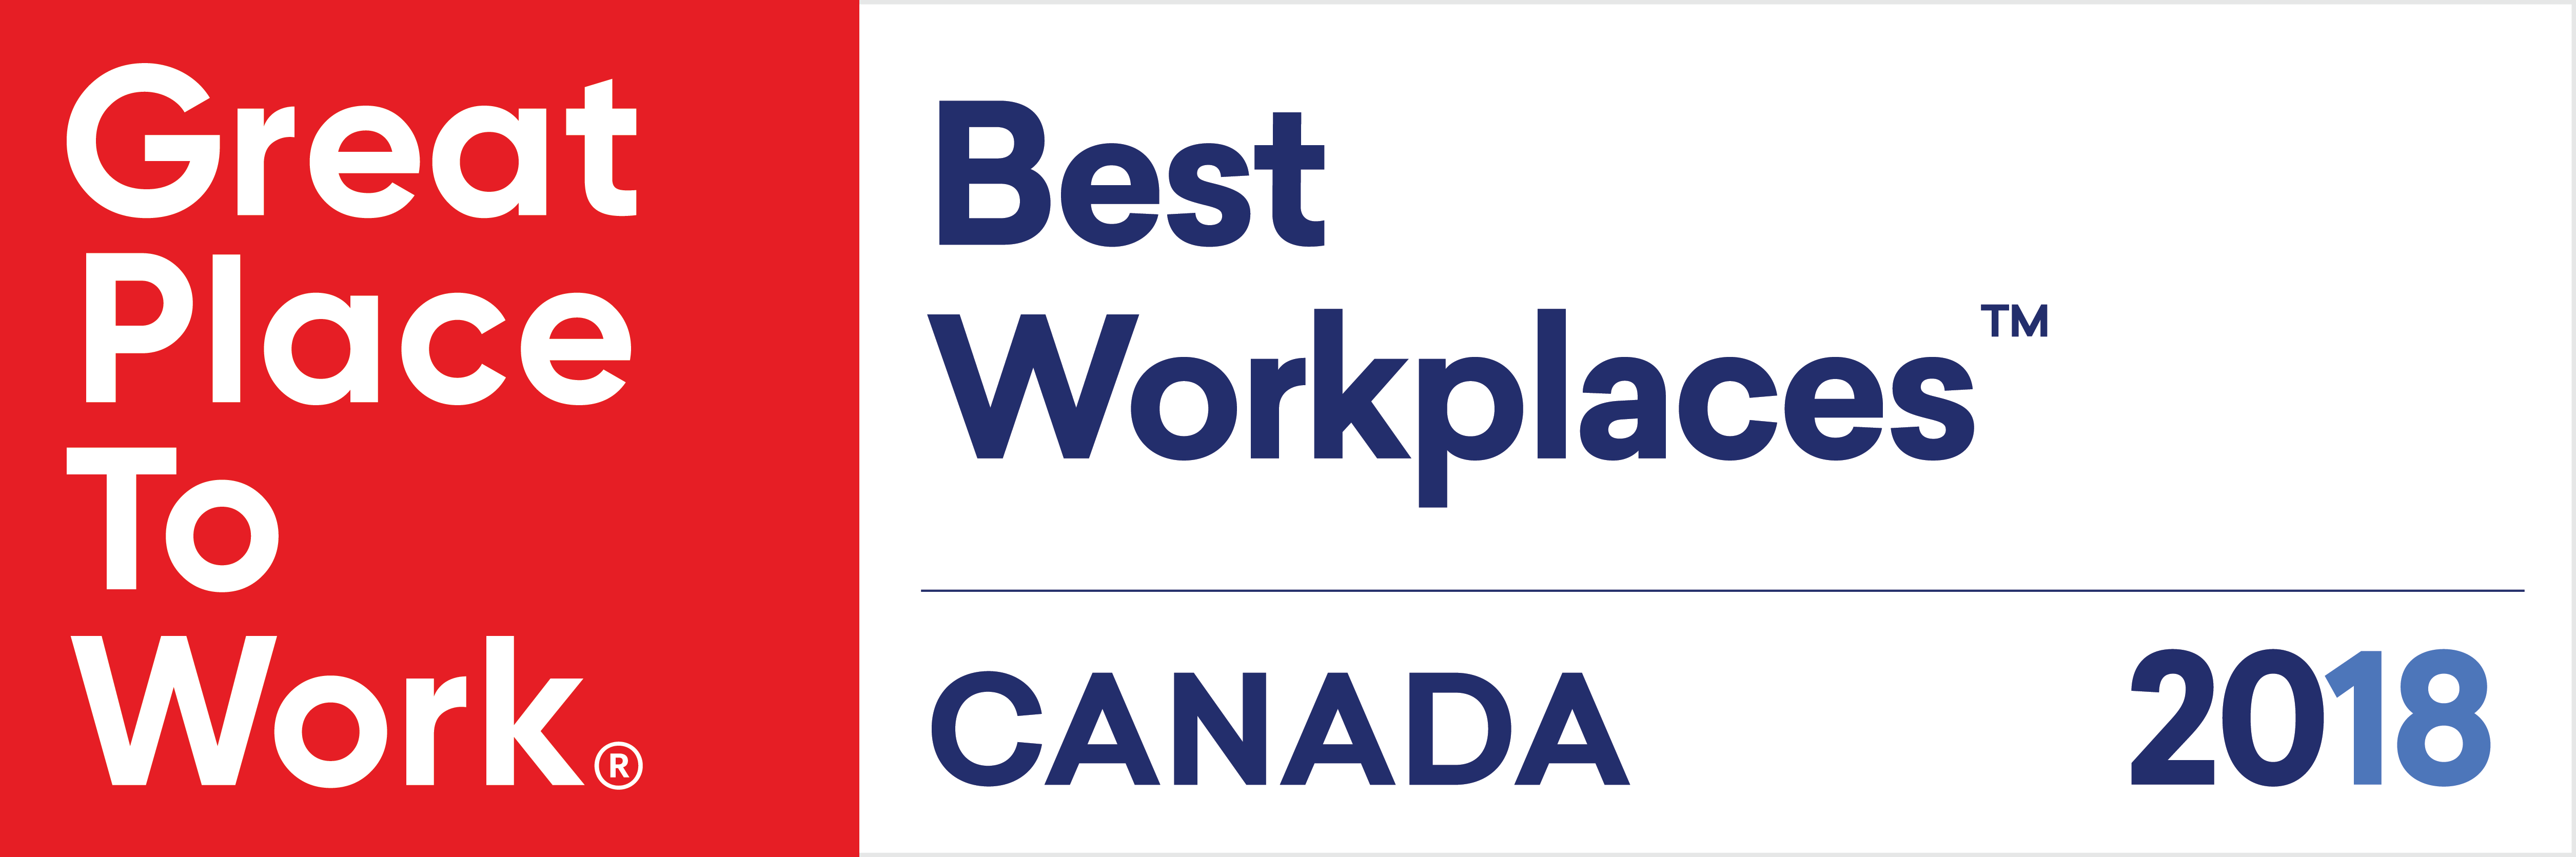 best workplaces 2018